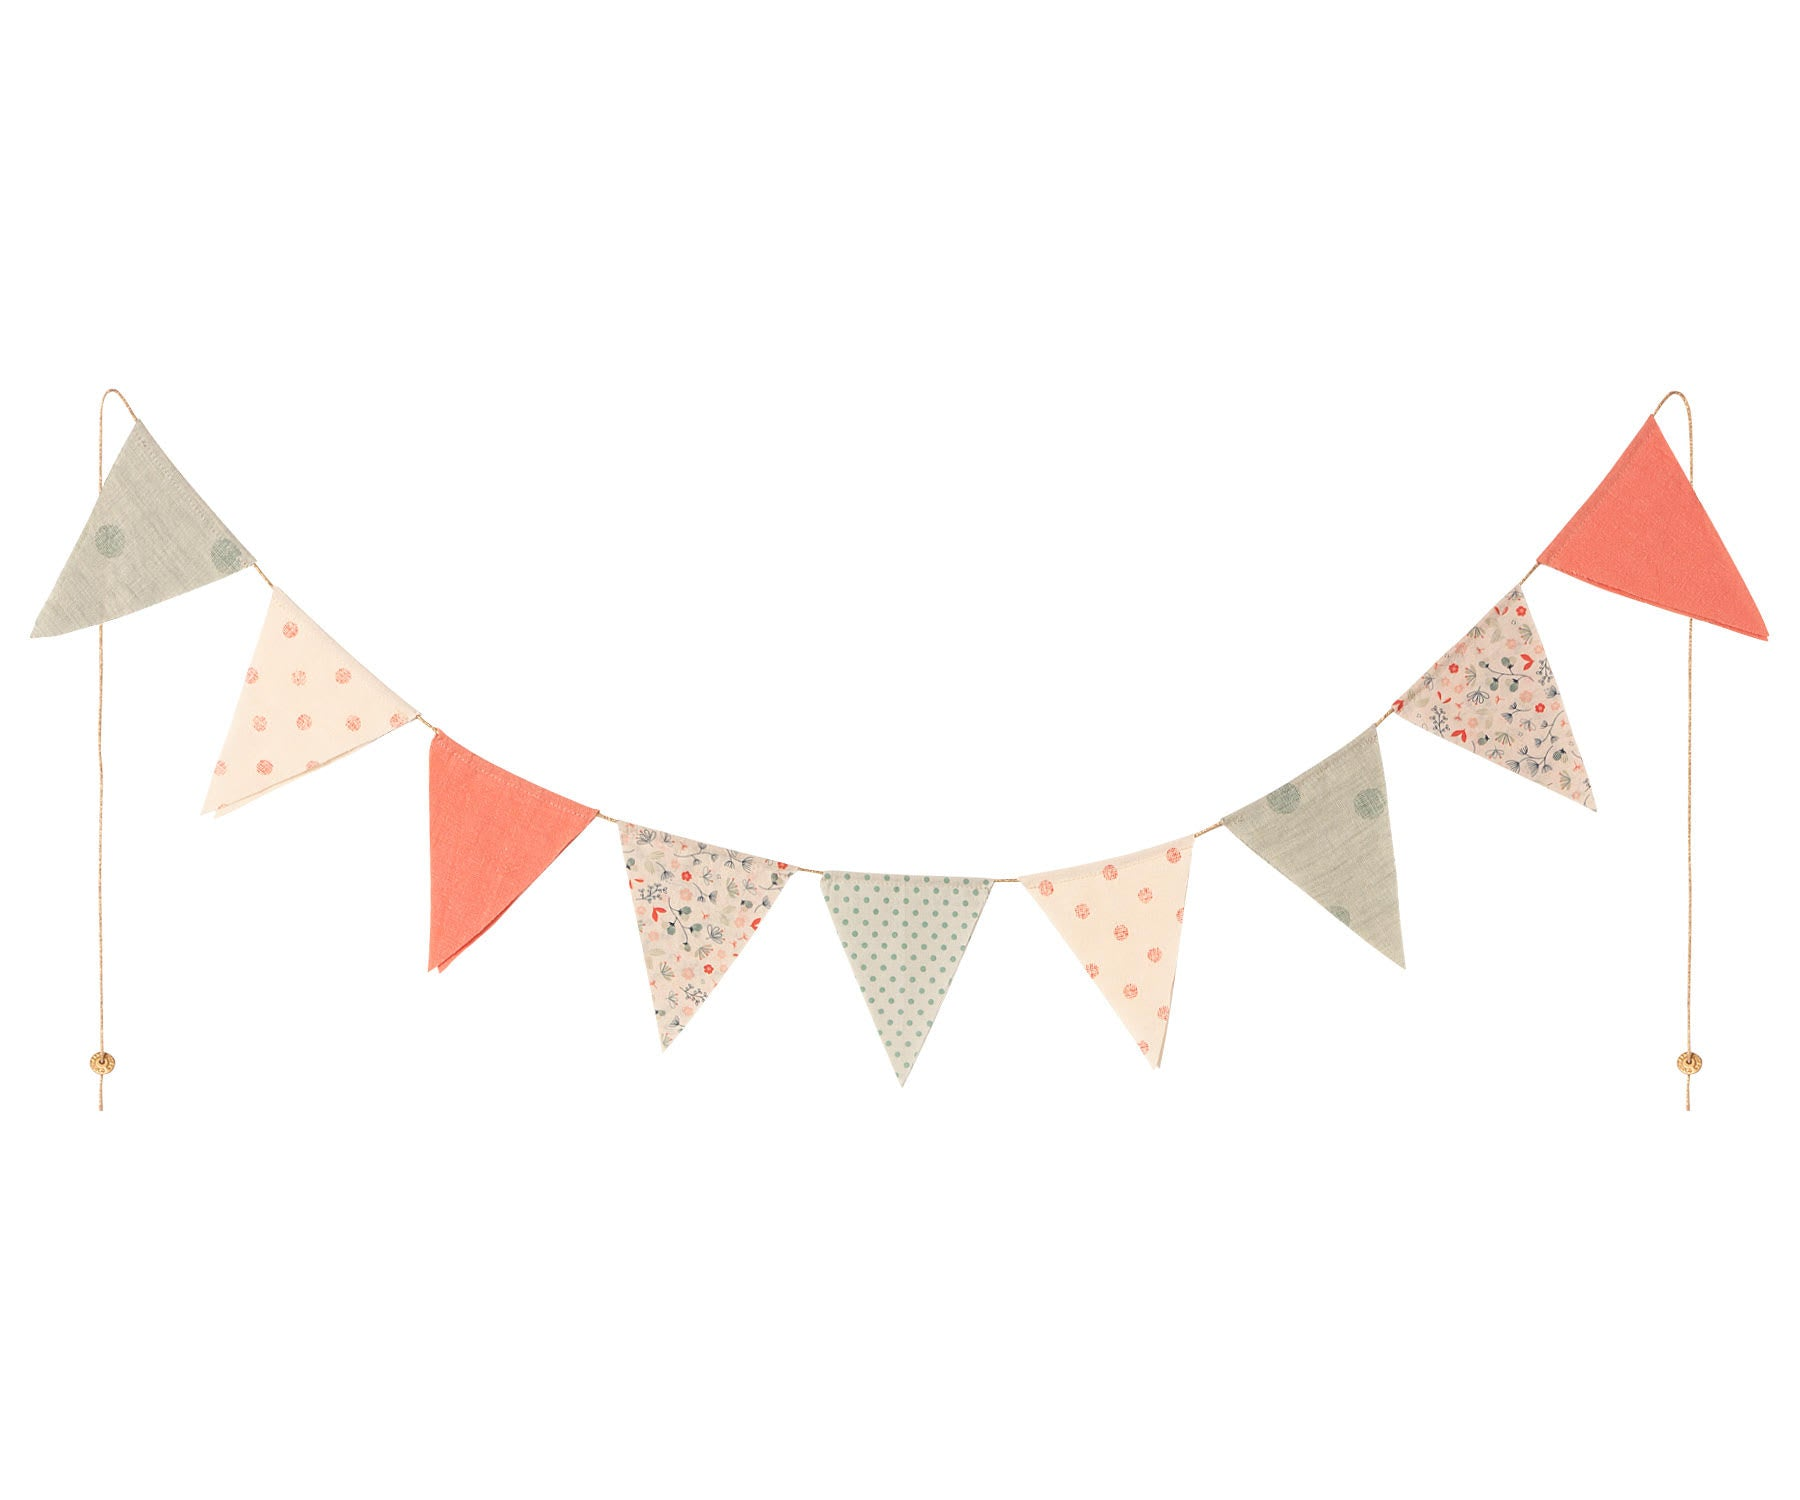 Maileg Garland 9 Flags - Multi Colour